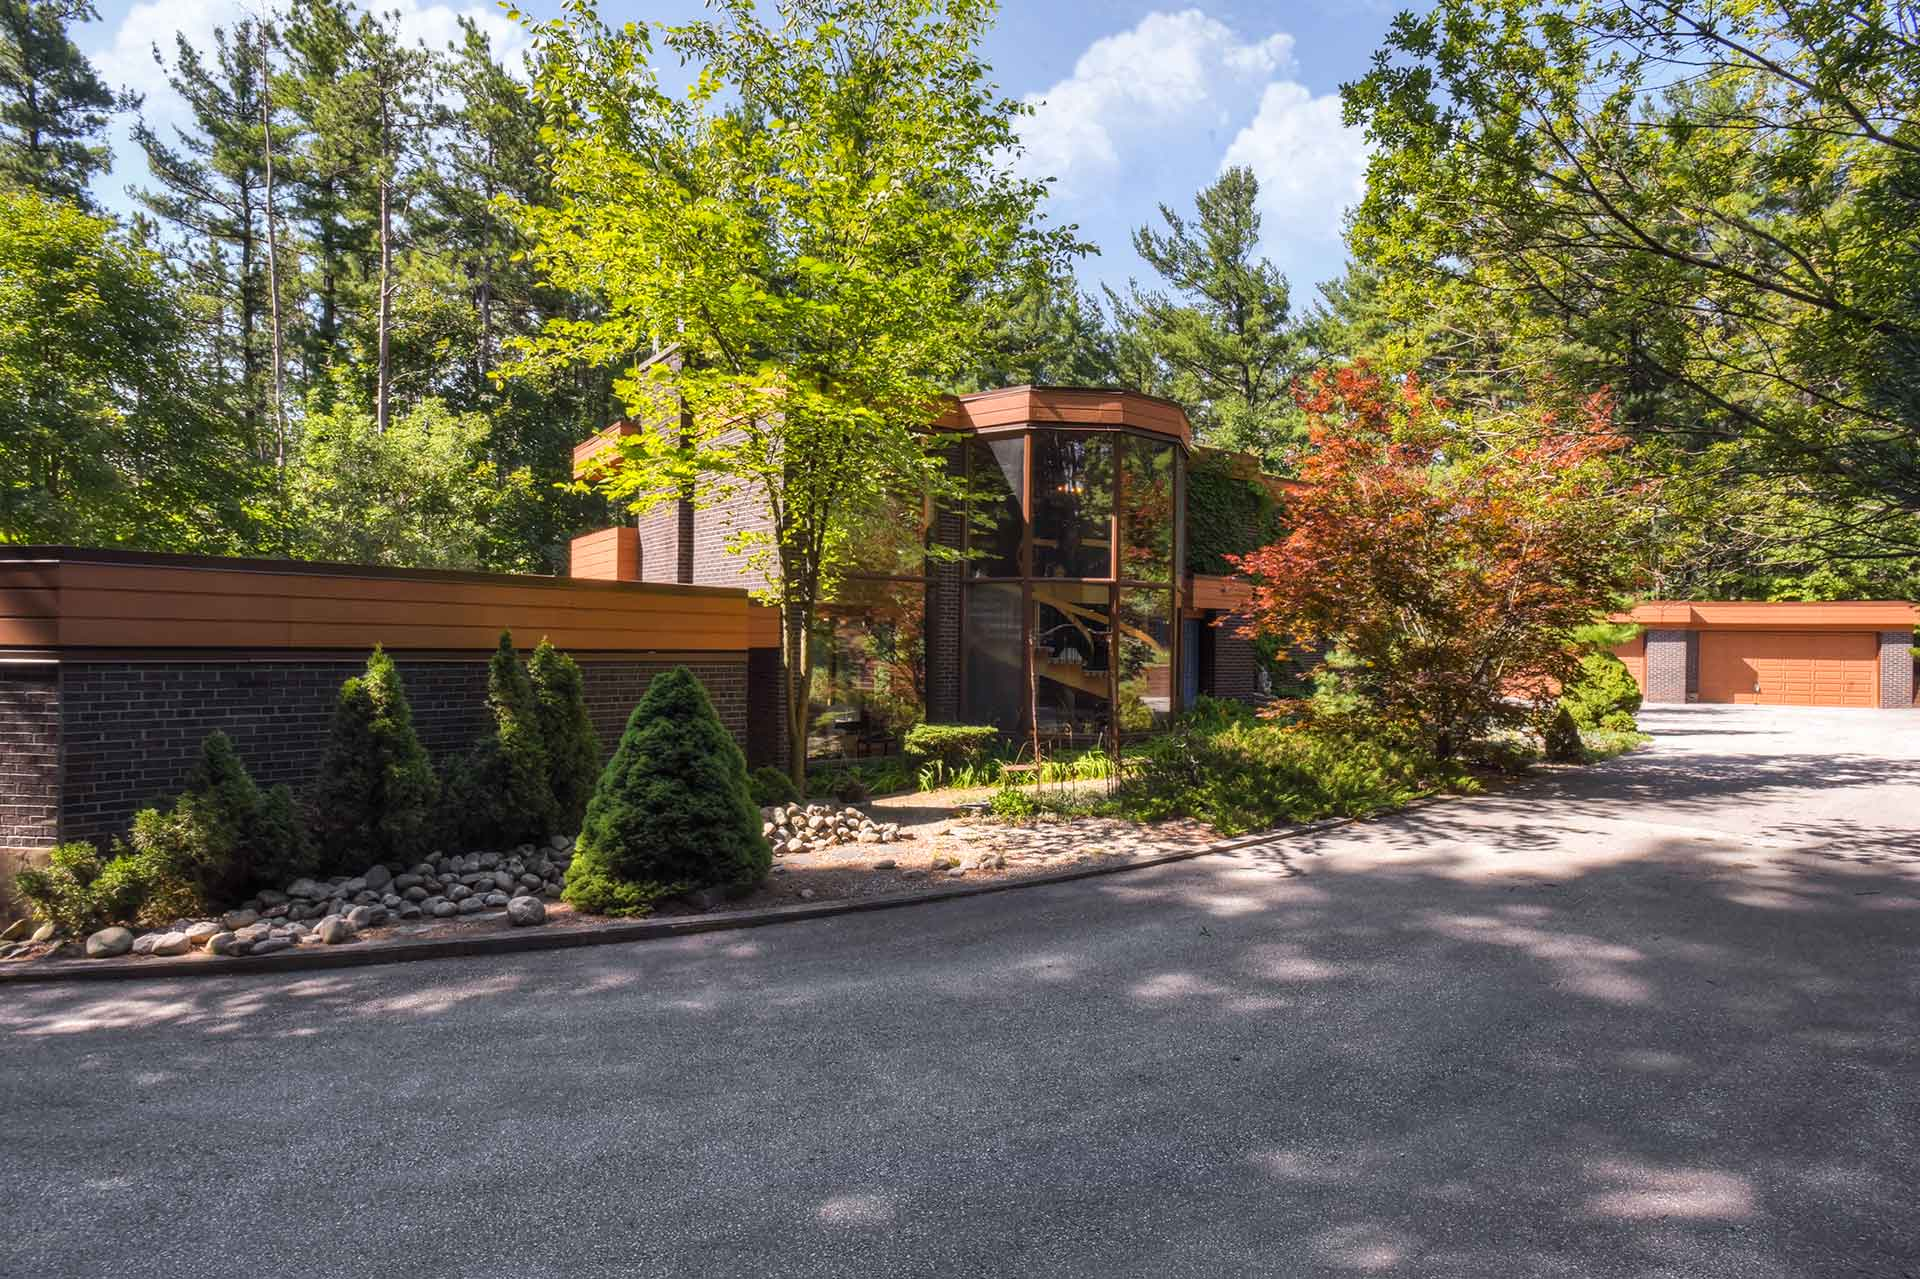 Mary klein, Old Church Road, Caledon, Home For Sale